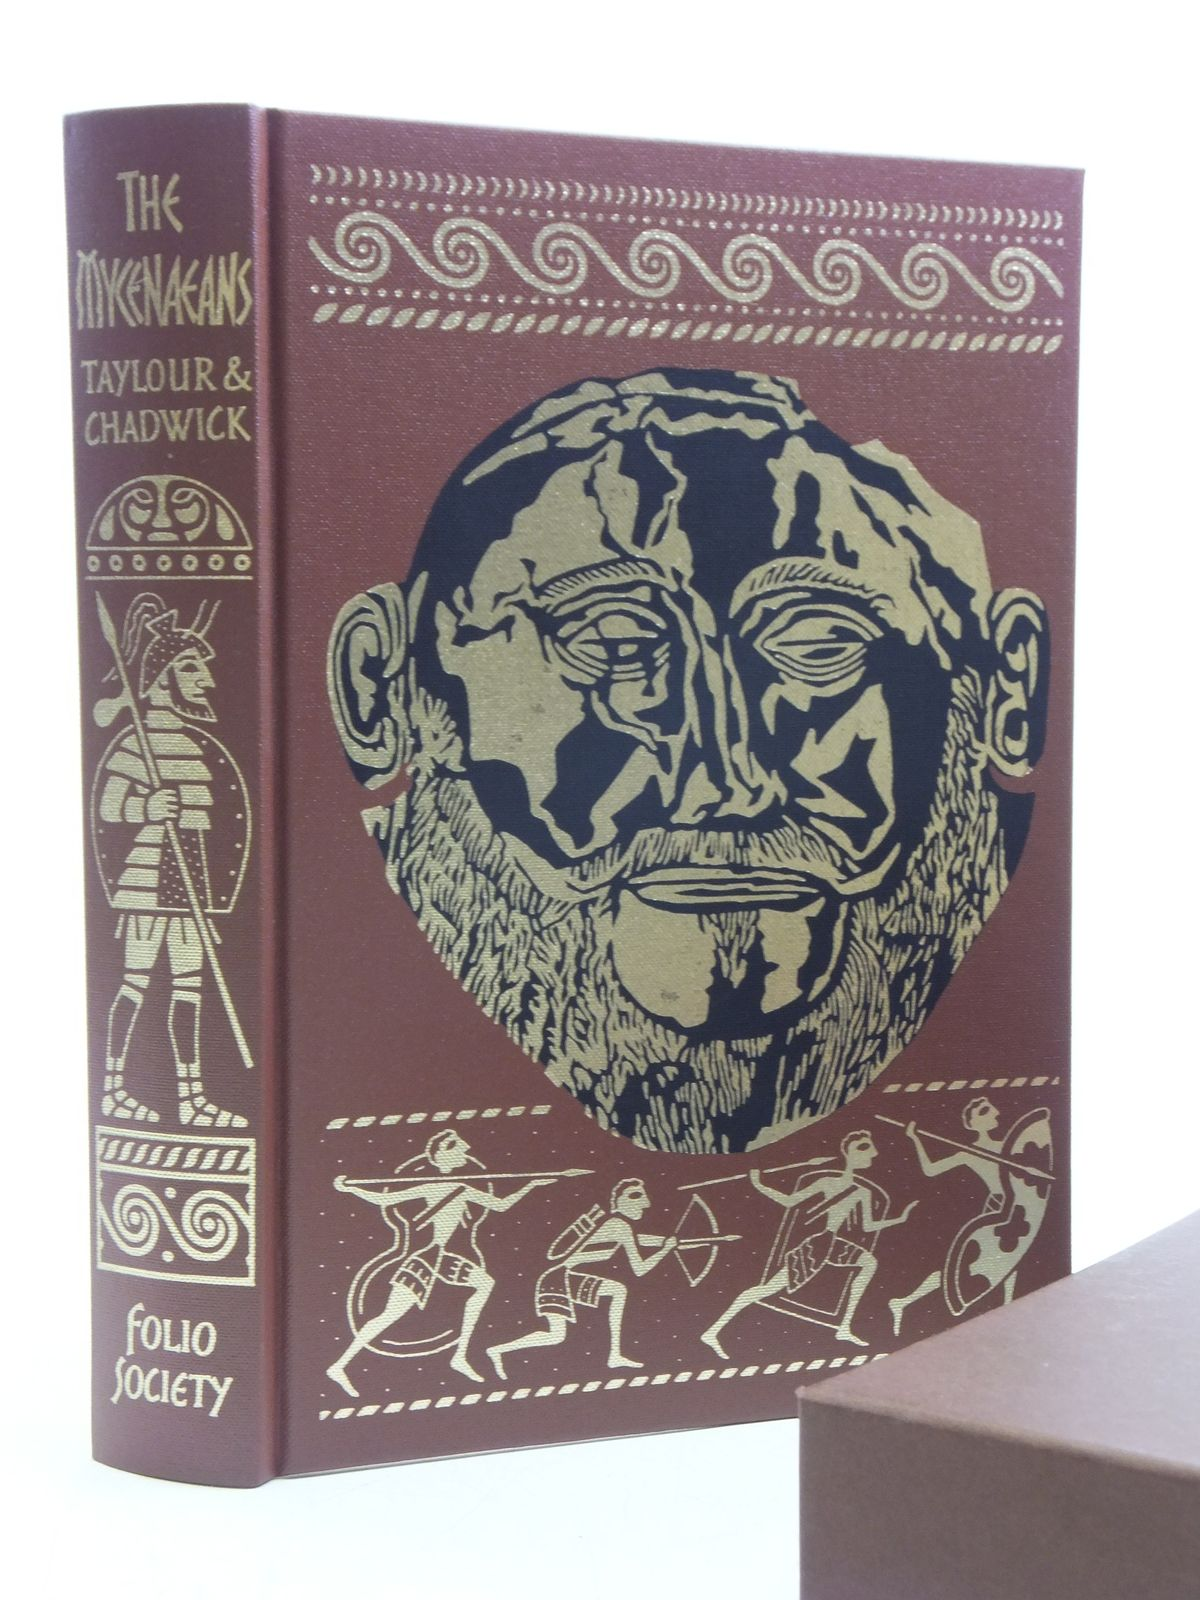 Photo of THE MYCENAEANS AND THE DECIPHERMENT OF LINEAR B written by Taylour, William<br />Chadwick, John published by Folio Society (STOCK CODE: 2120534)  for sale by Stella & Rose's Books